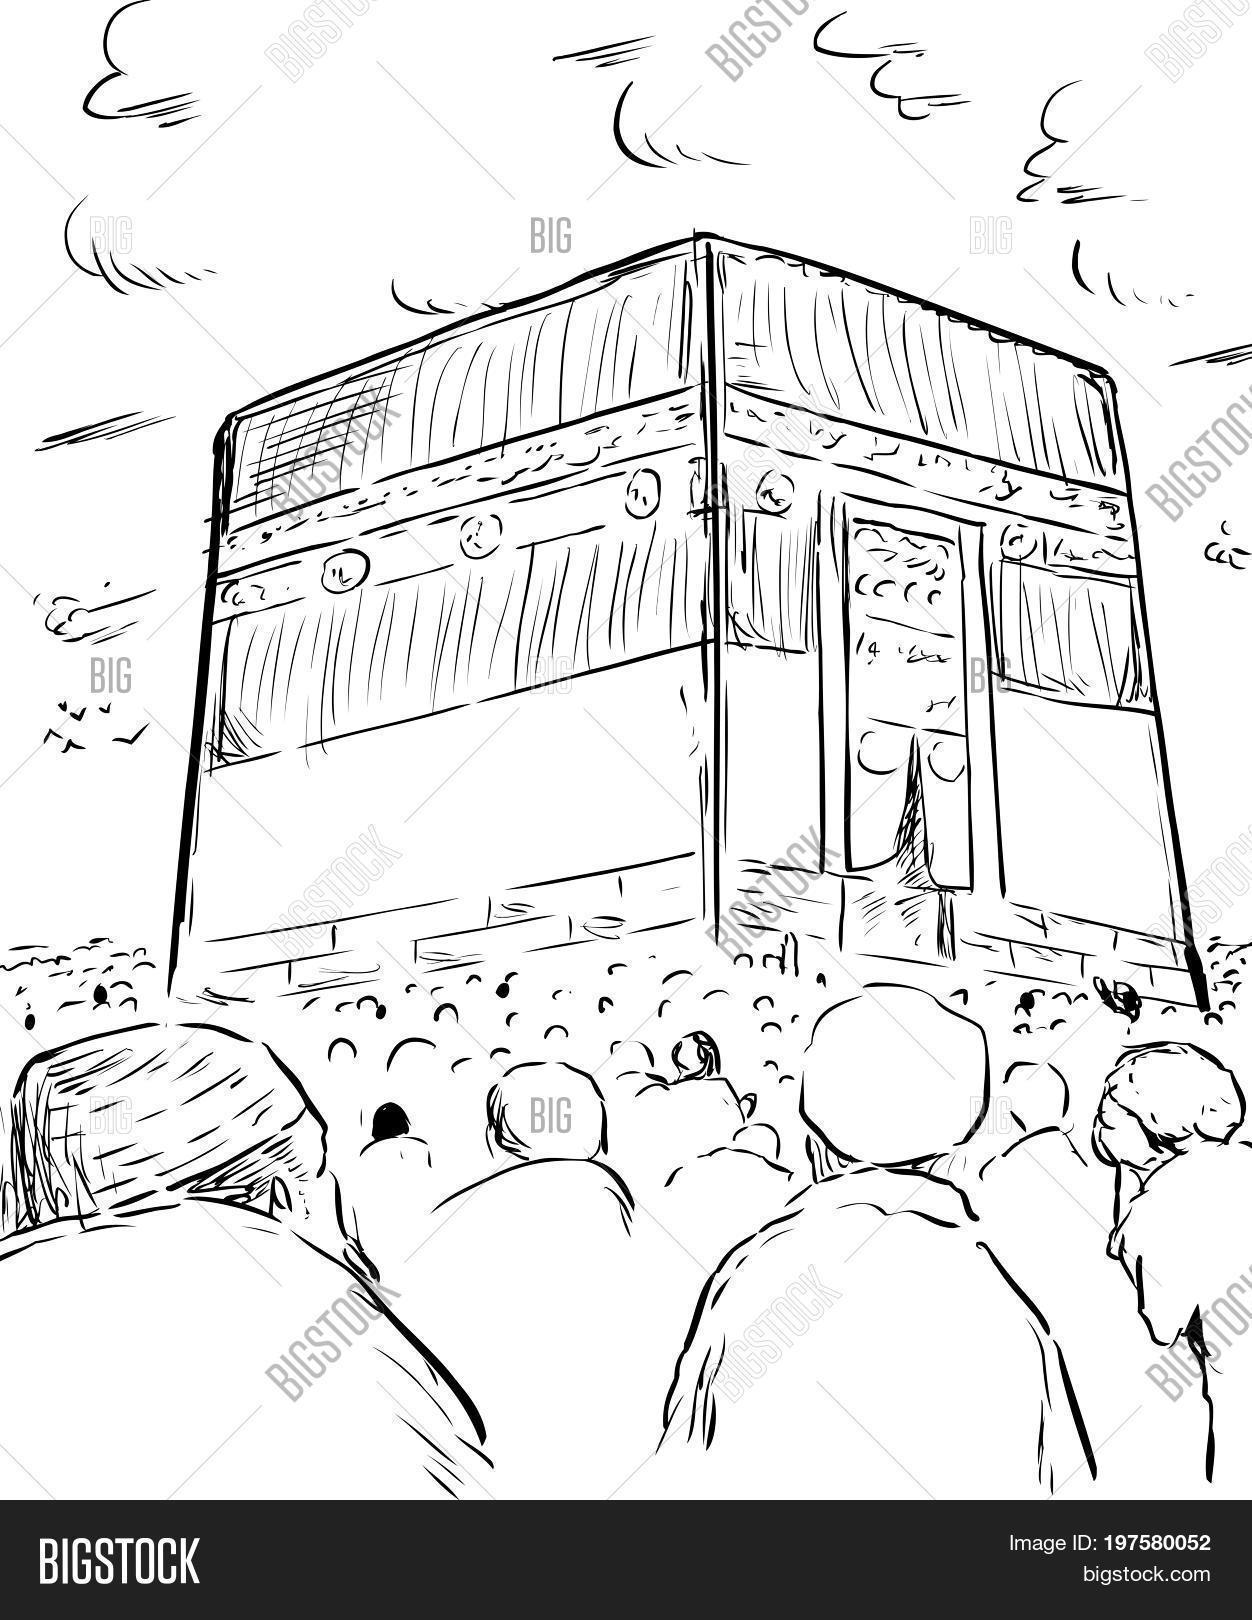 Kaba Drawing at GetDrawings com | Free for personal use Kaba